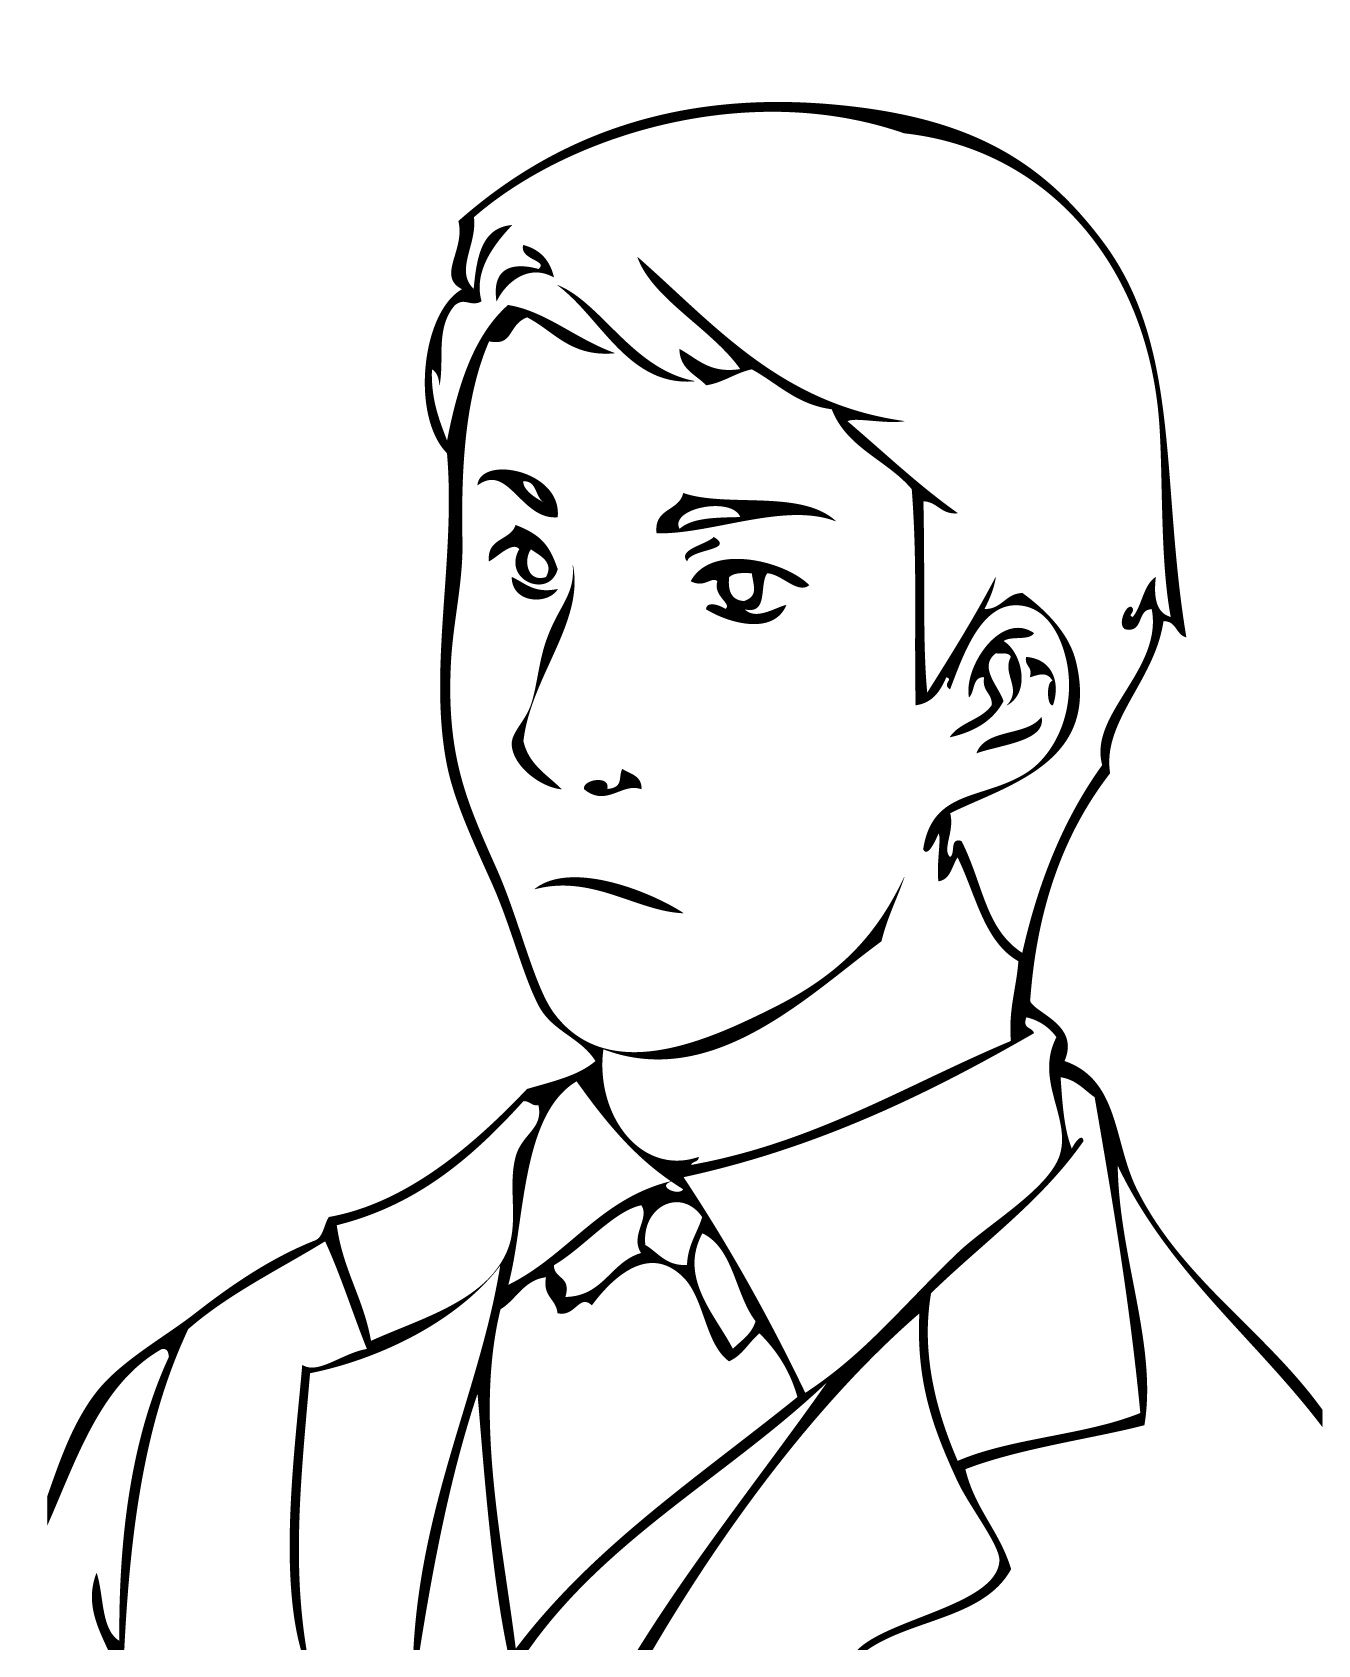 man coloring pages Thomas Edison as young man coloring page | History coloring sheets  man coloring pages